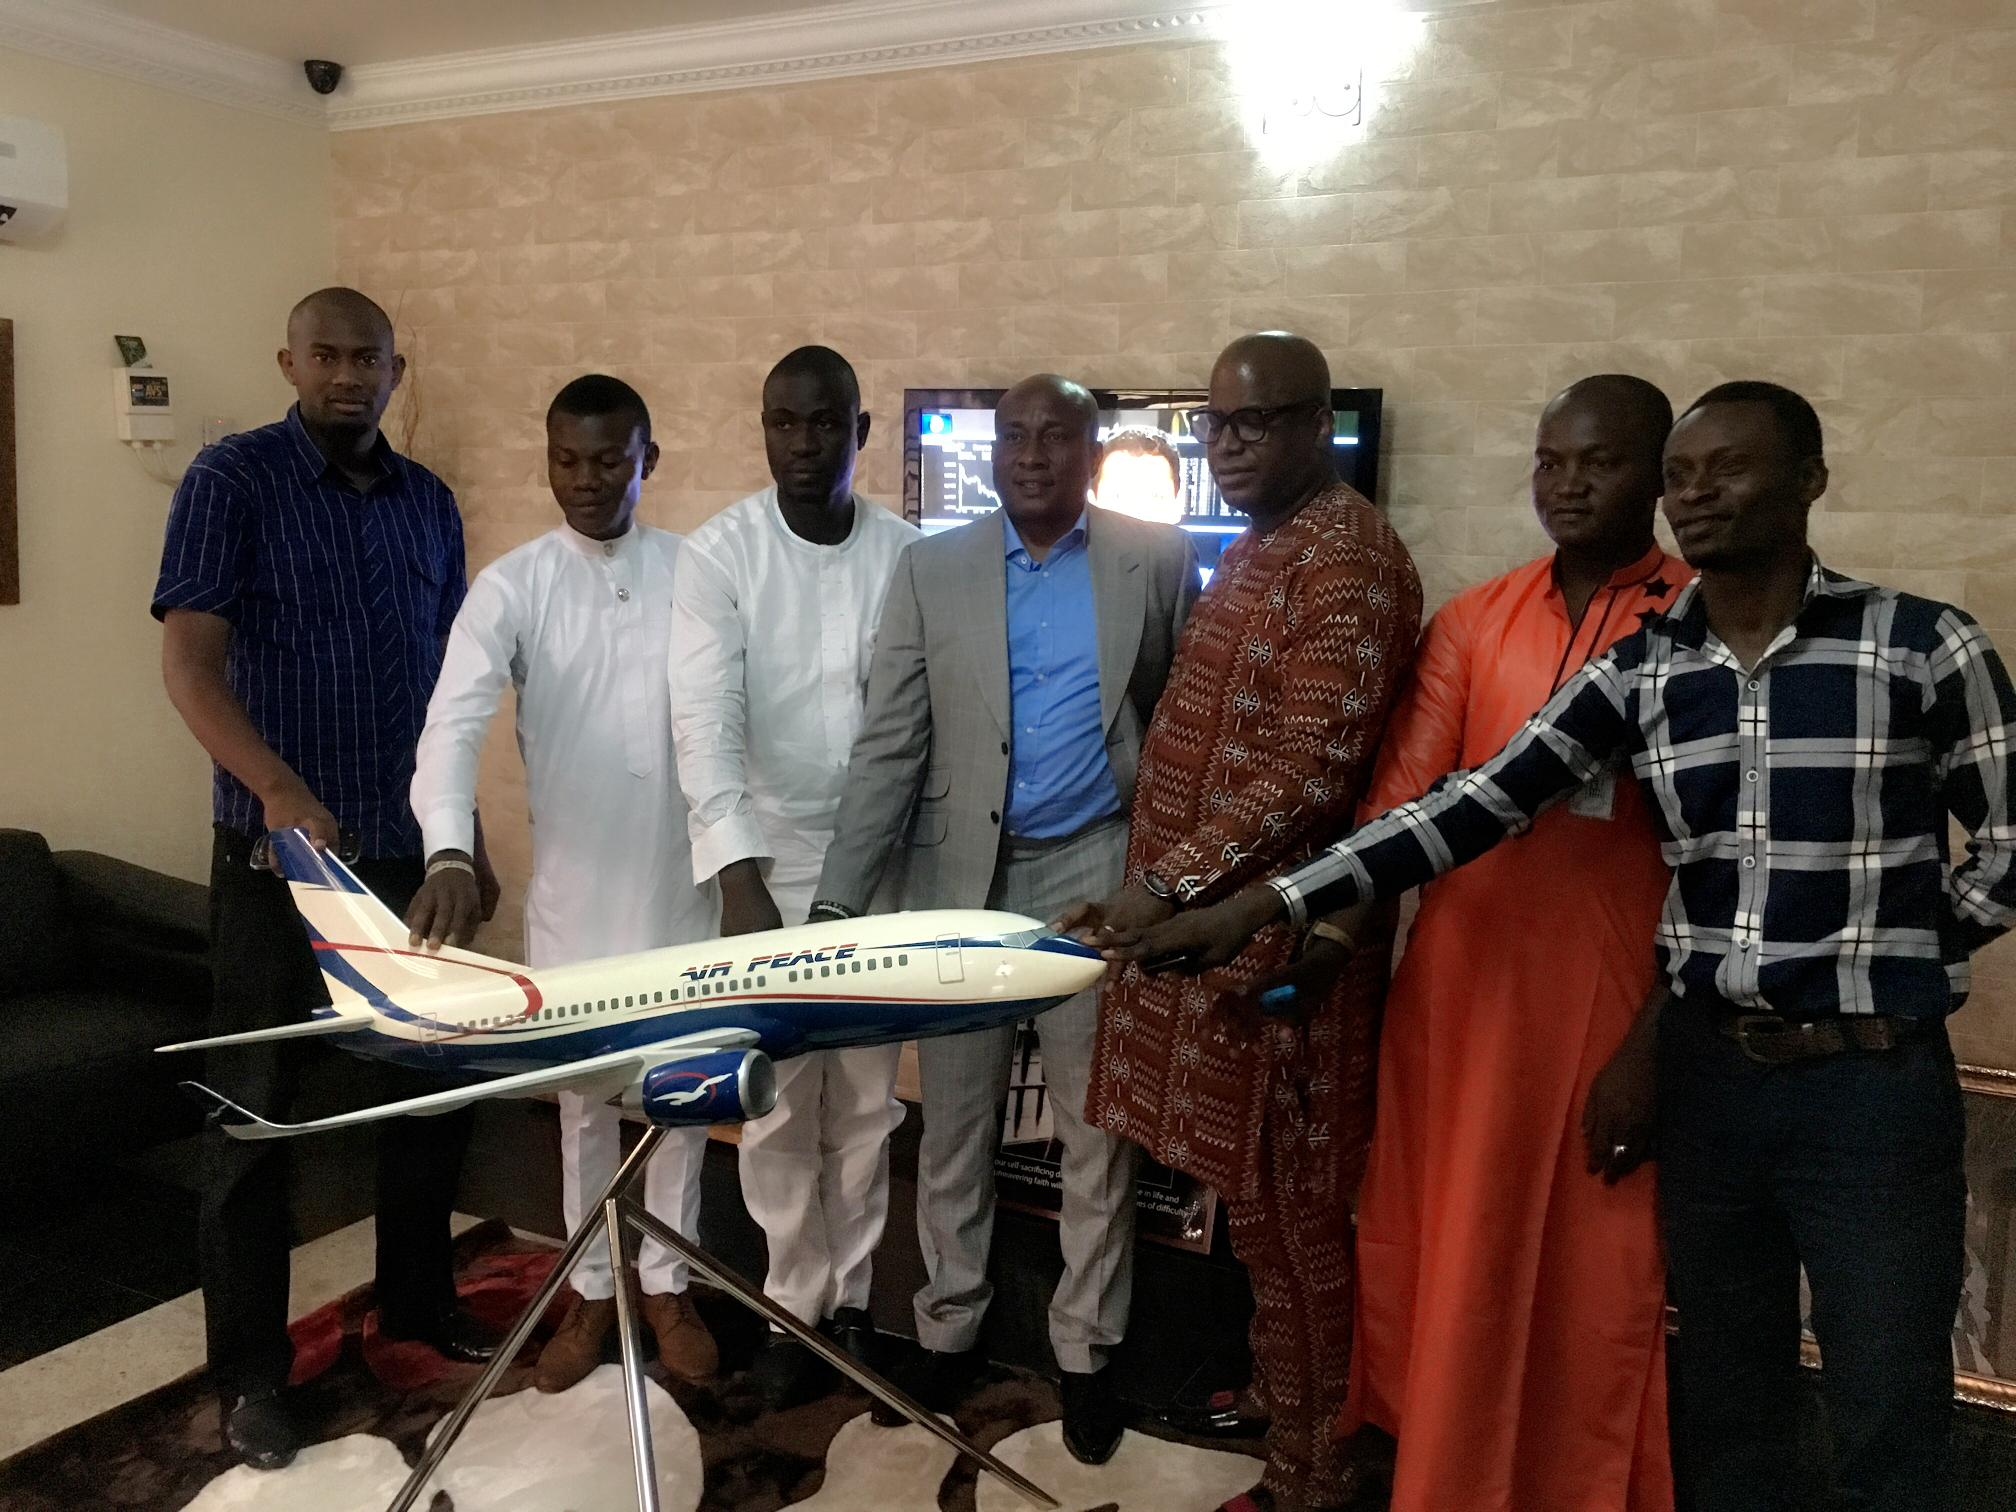 Chairman/Chief Executive Officer of Air Peace, Barr. Allen Onyema (middle), Senate President of the National Association of Nigerian Students (NANS), Comrade Salam Oyejide (3rd left), other executive members of NANS and the Grand Patron of the association in Akwa Ibom State, Mr. Ubong King (3rd right) placing their hands on Air Peace's model aircraft to symbolise their endorsement of the airline as the official carrier of Nigerian students during their visit to the corporate headquarters of the airline in Lagos.